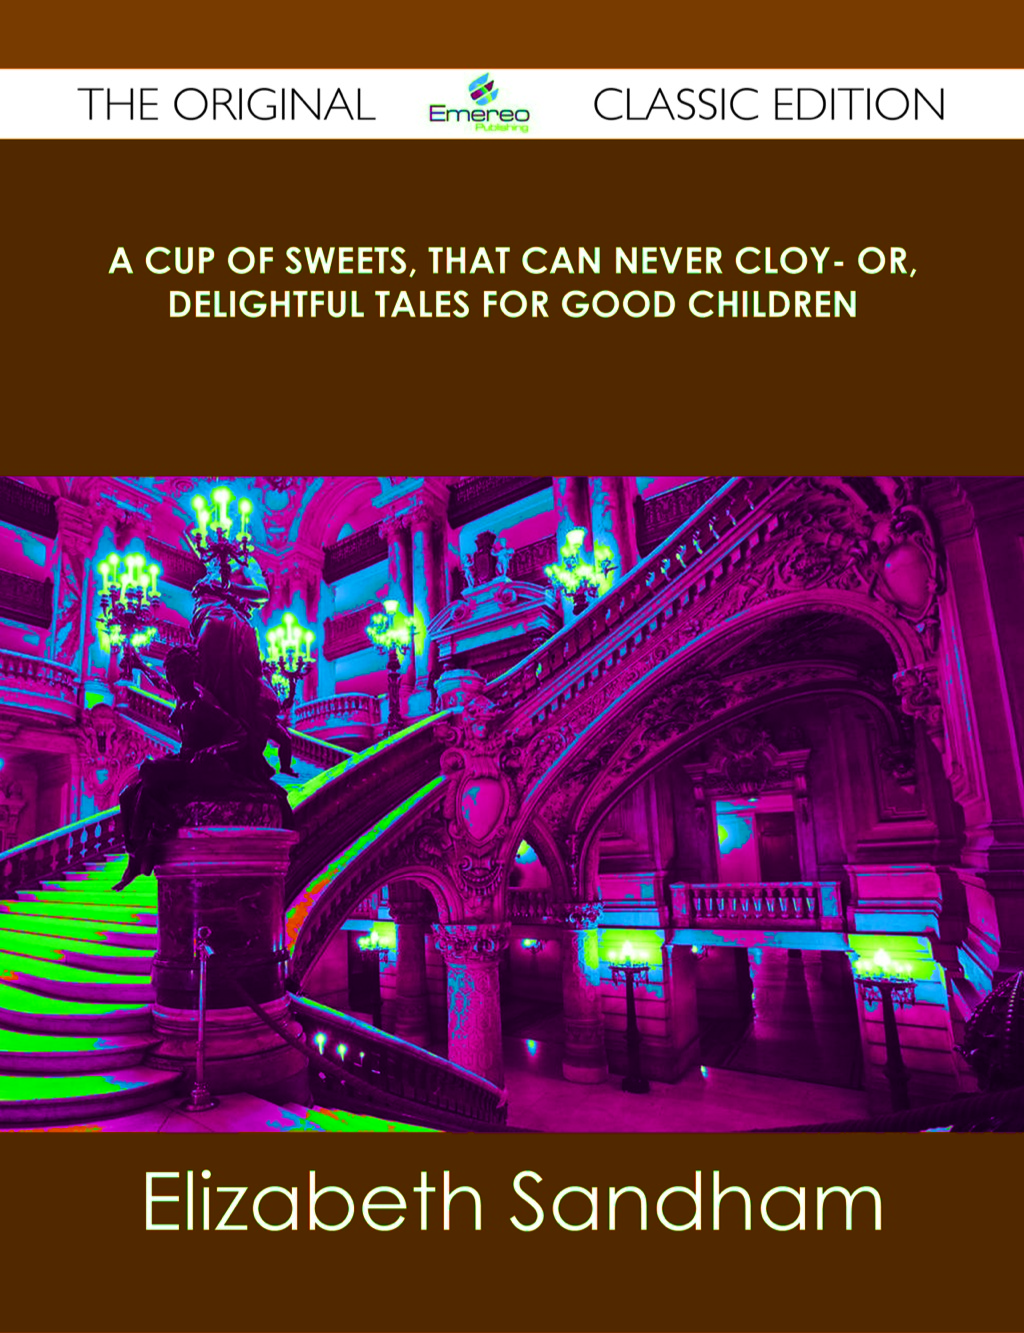 A cup of sweets, that can never cloy- or, delightful tales for good children - The Original Classic Edition (ebook) eBooks